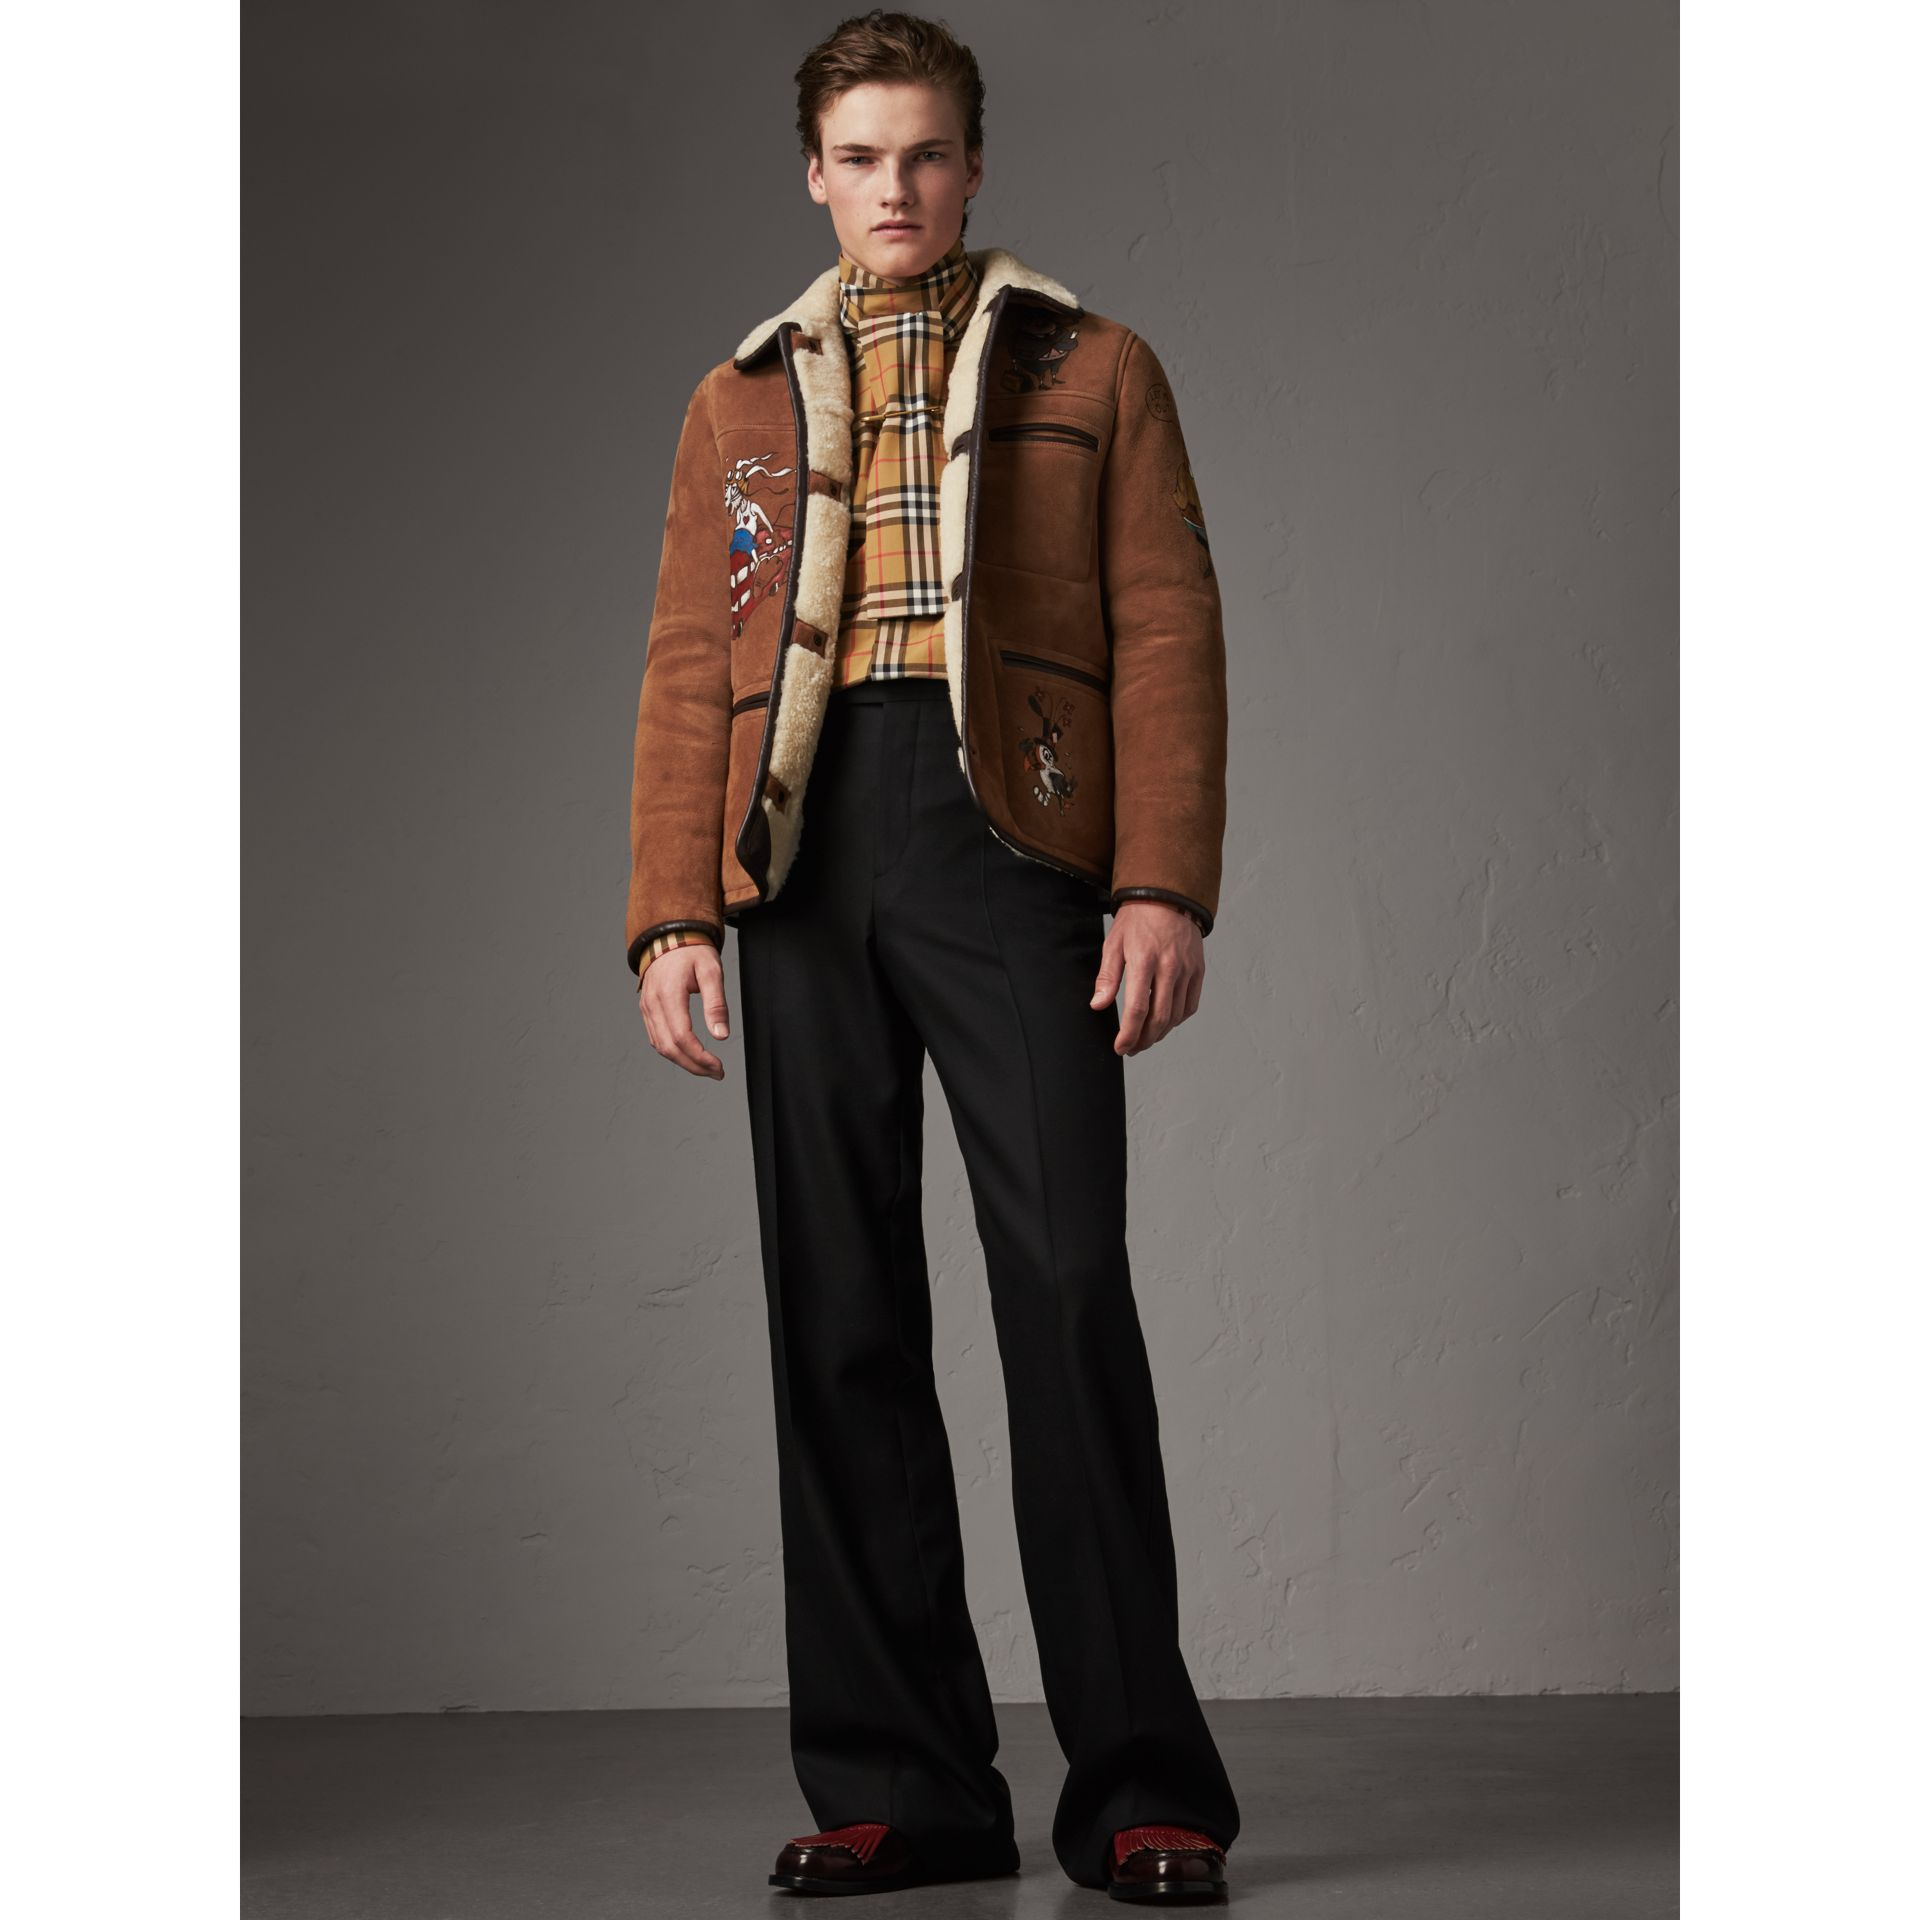 Sketch Print Shearling Jacket in Biscuit - Men | Burberry - gallery image 0